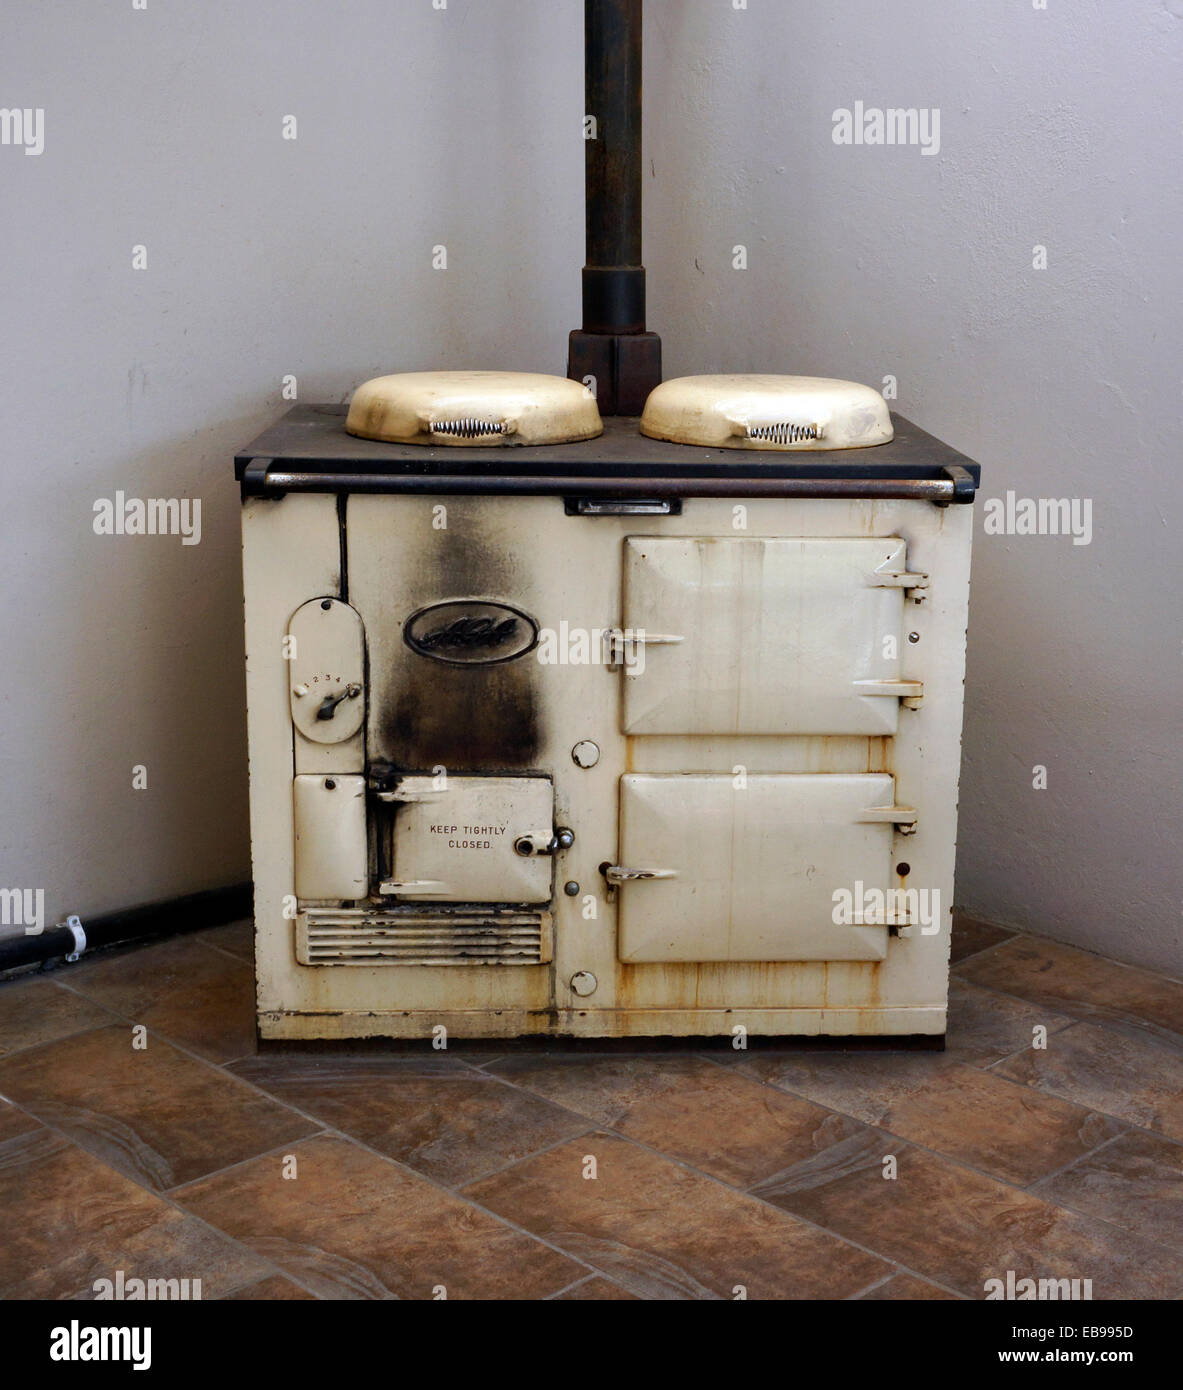 Old  Aga stove in restaurant in Riebeek Kasteel . Western Cape Province, South Africa. - Stock Image